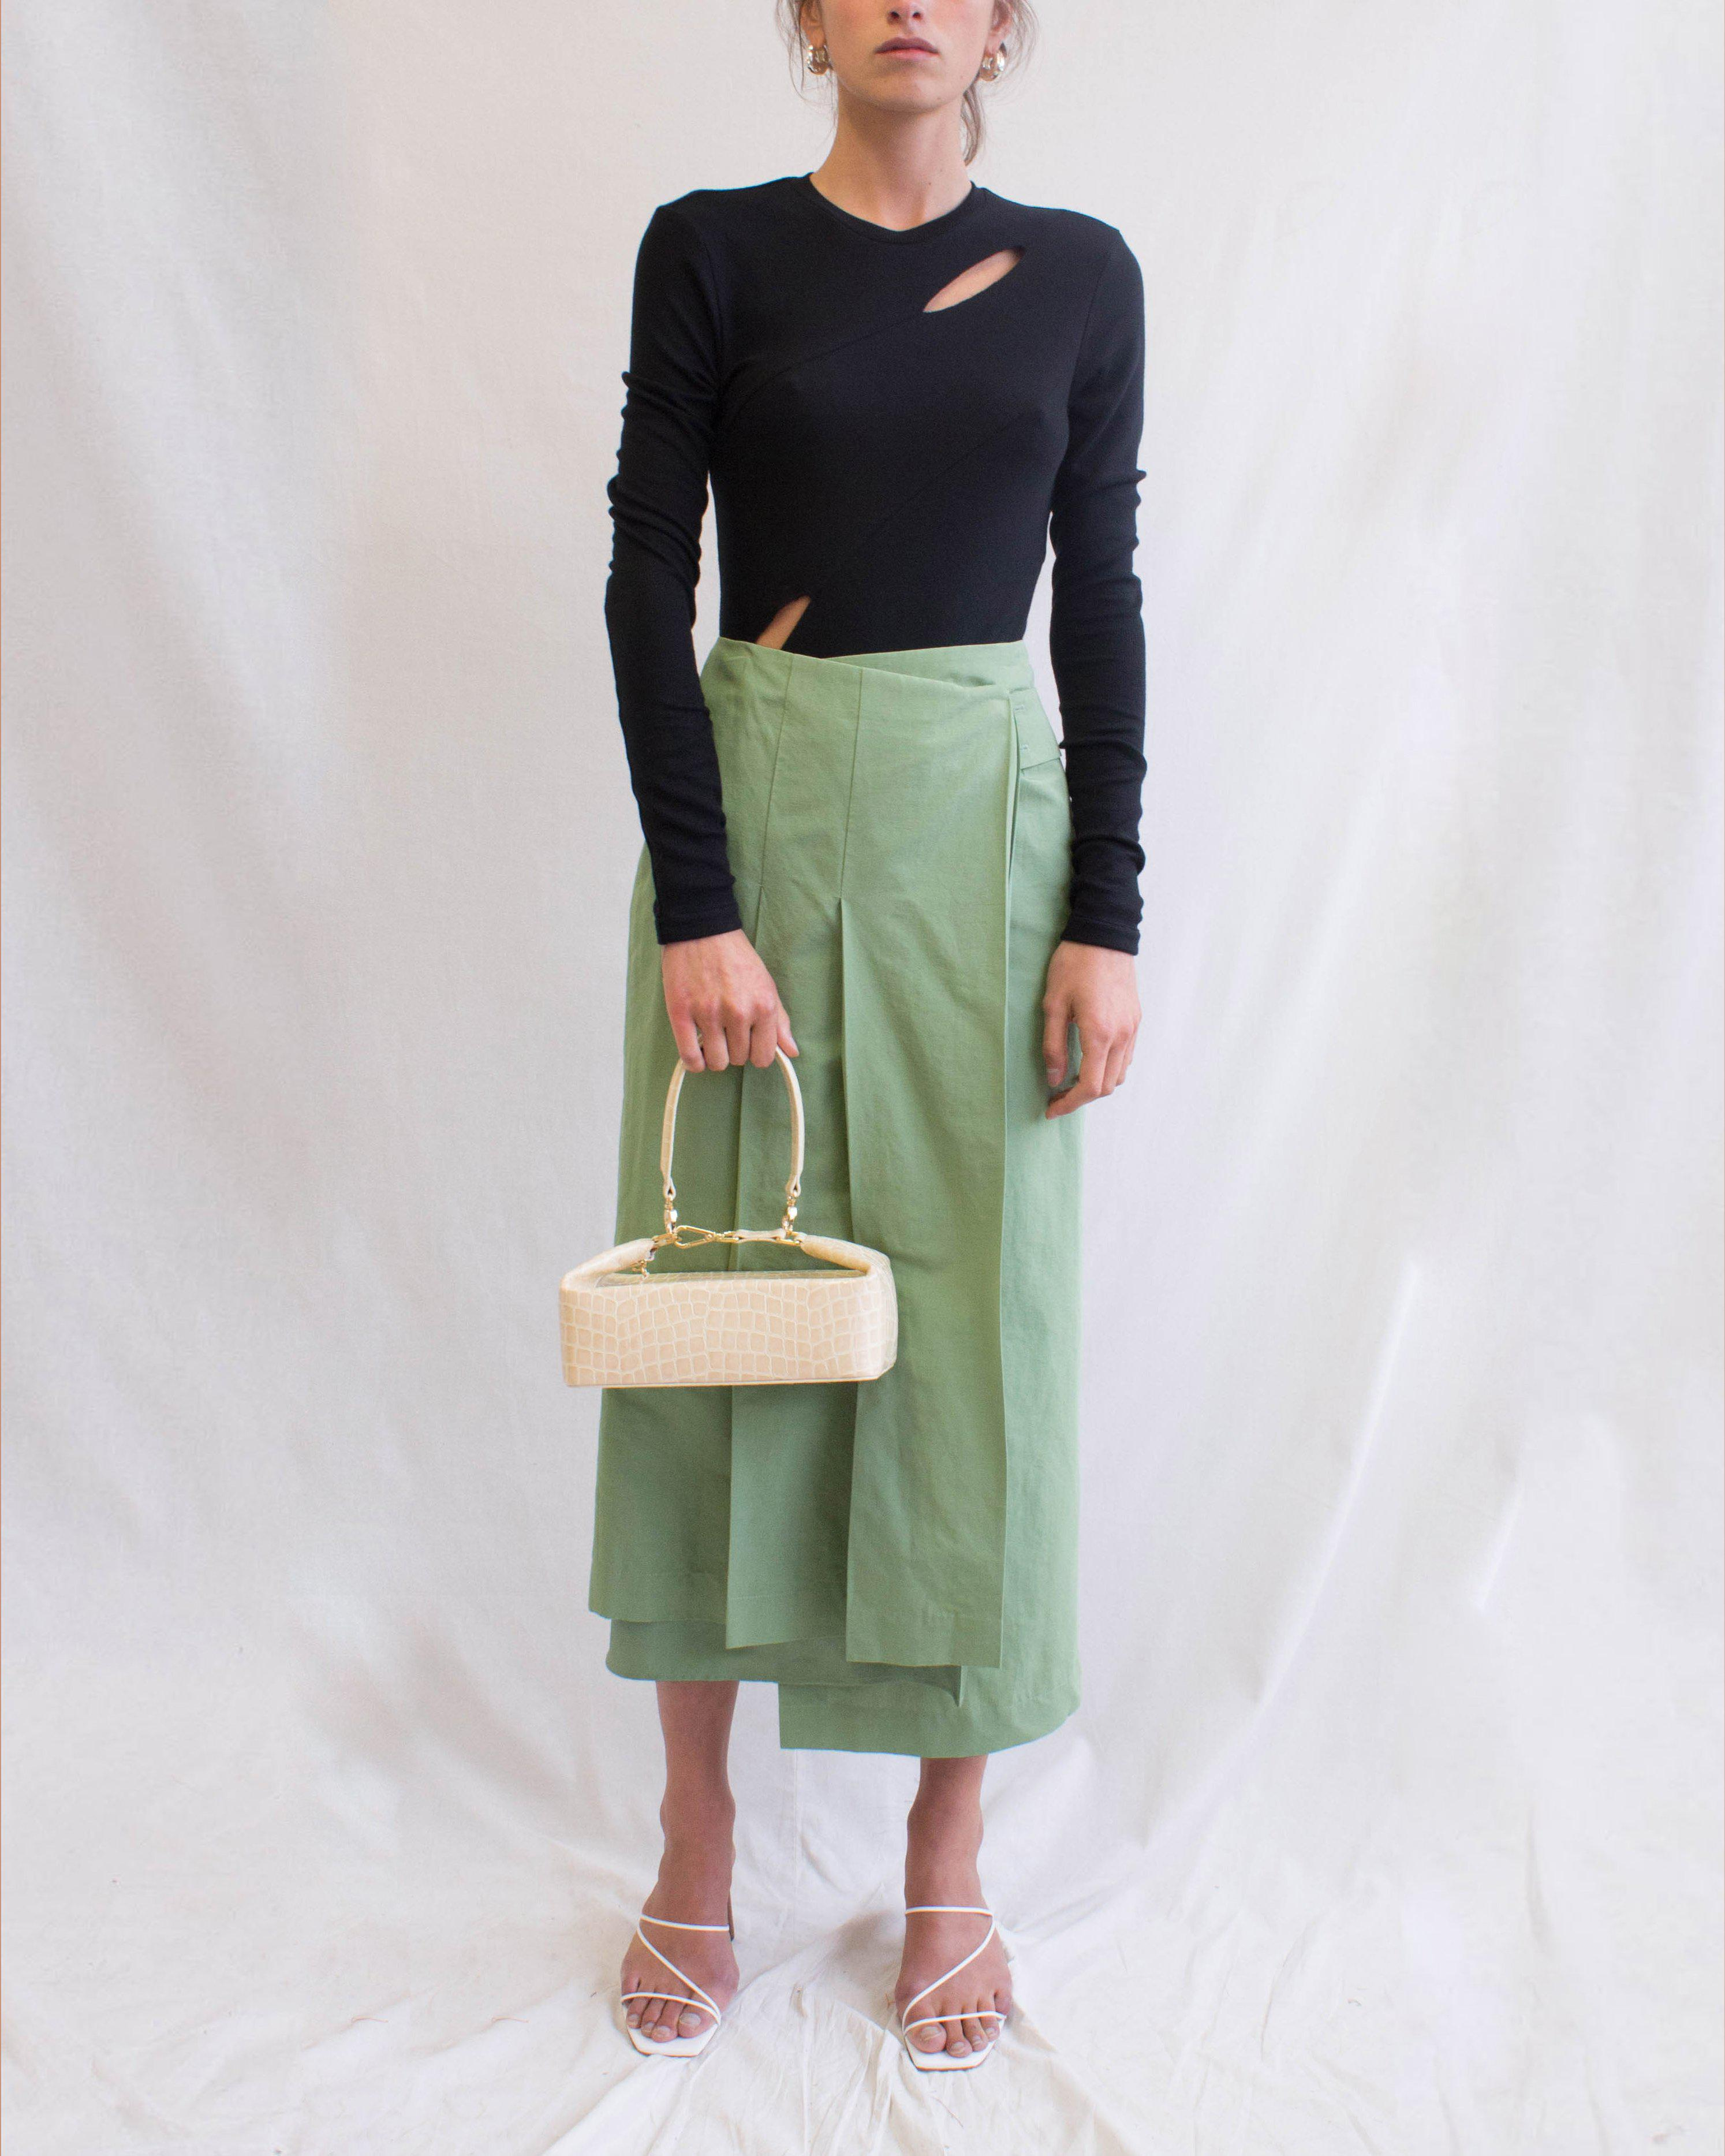 Cady Top Jersey Rib Black - SPECIAL PRICE